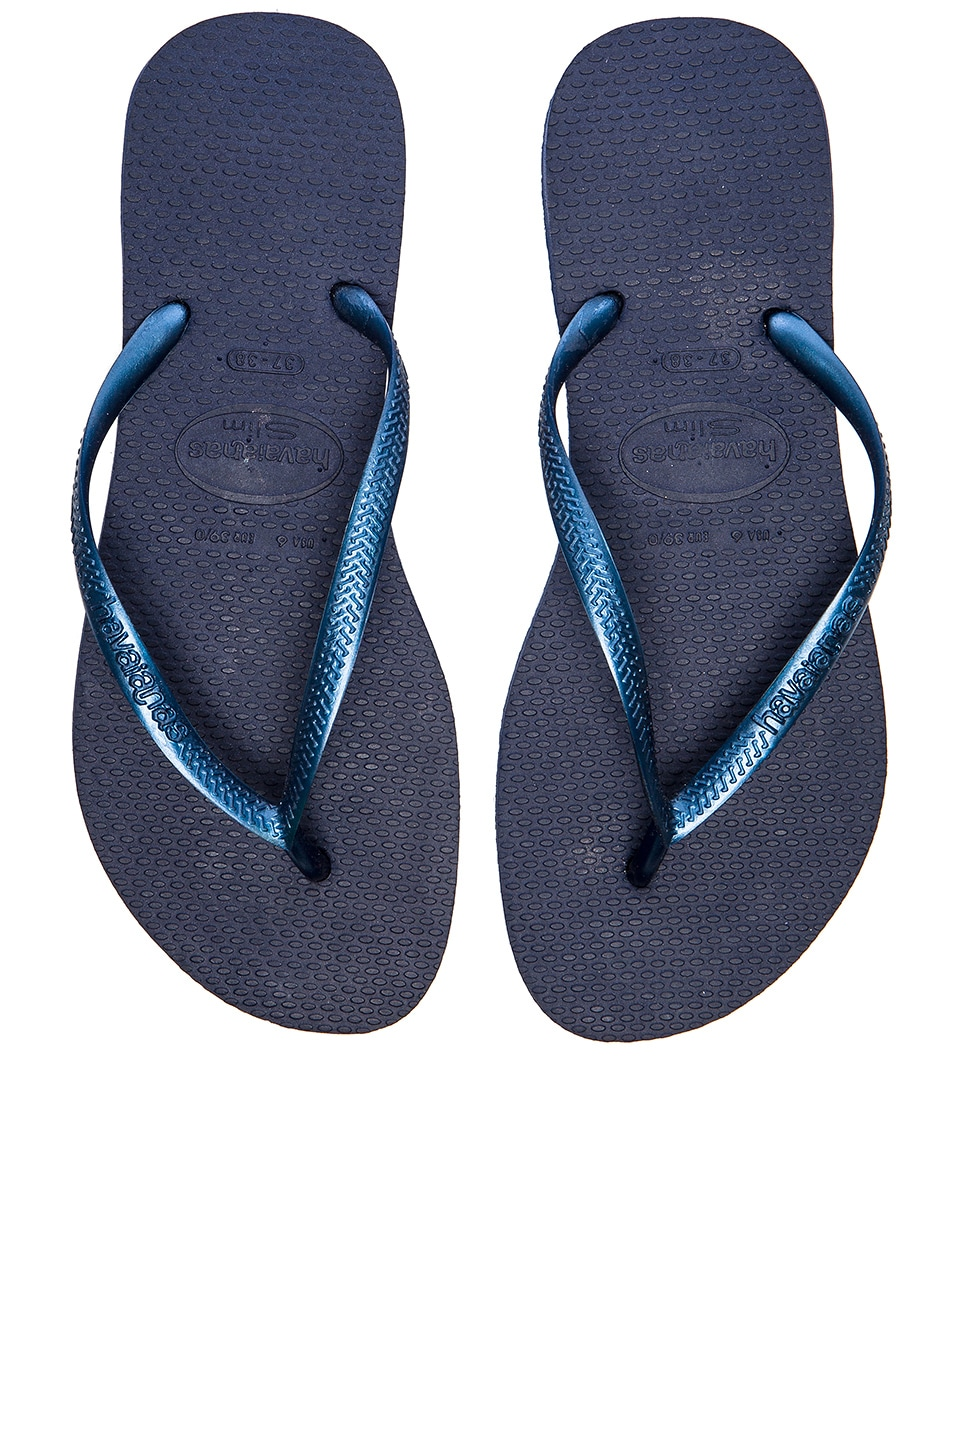 Havaianas Slim Flip Flop in Navy Blue